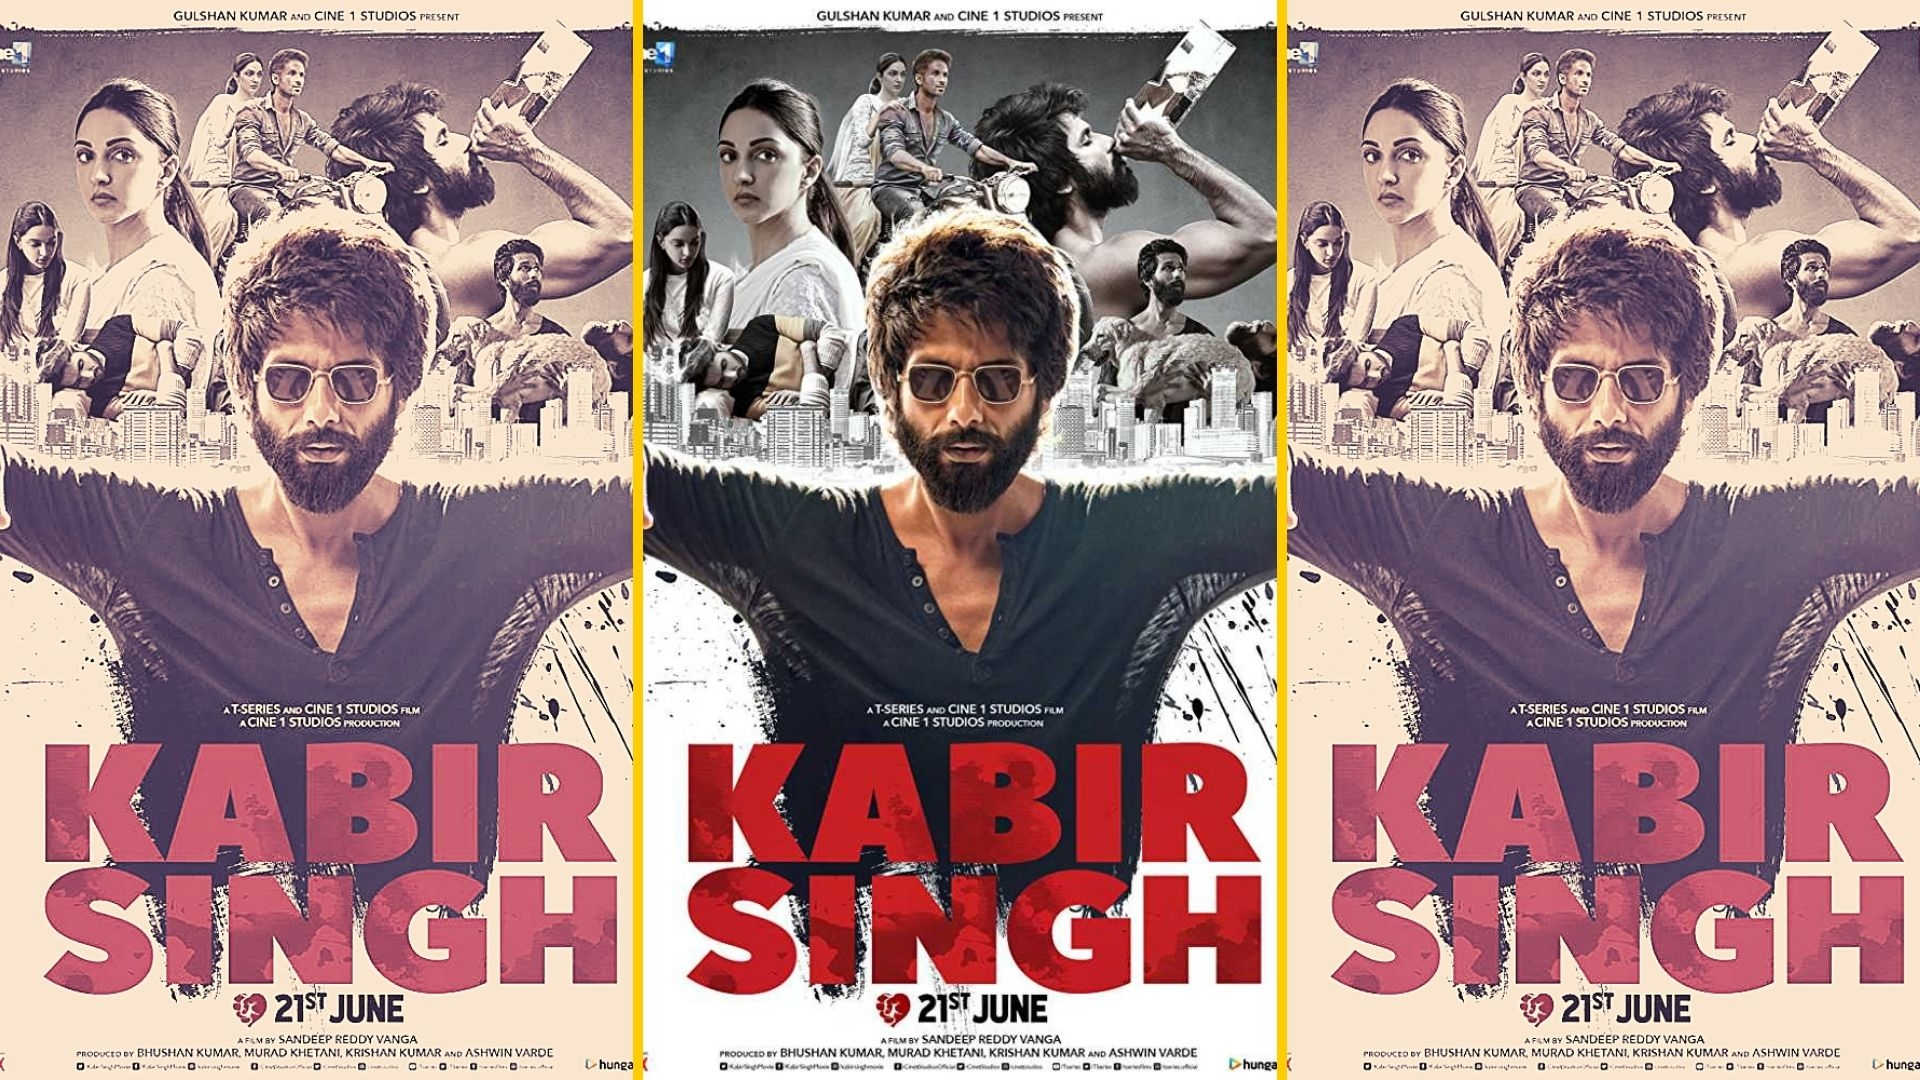 'Kabir Singh' Beats 'Uri', Becomes Biggest B'Wood Earner of 2019